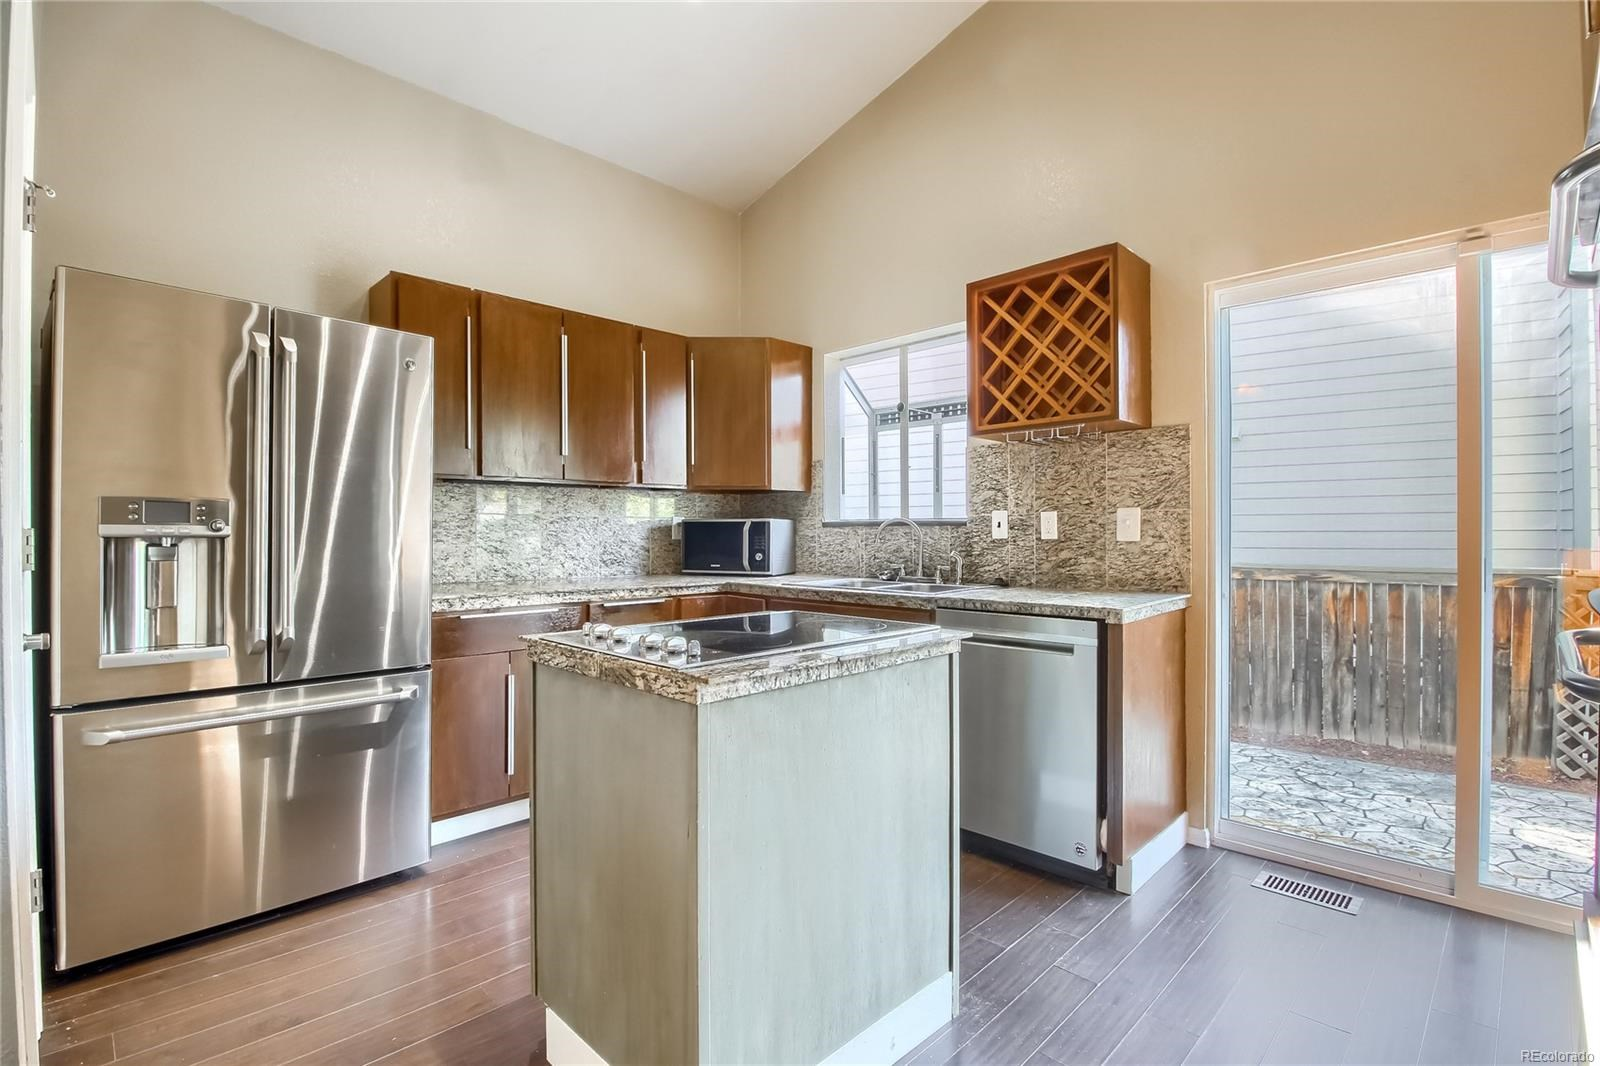 MLS# 2004721 - 7 - 6744 Amherst Court, Highlands Ranch, CO 80130